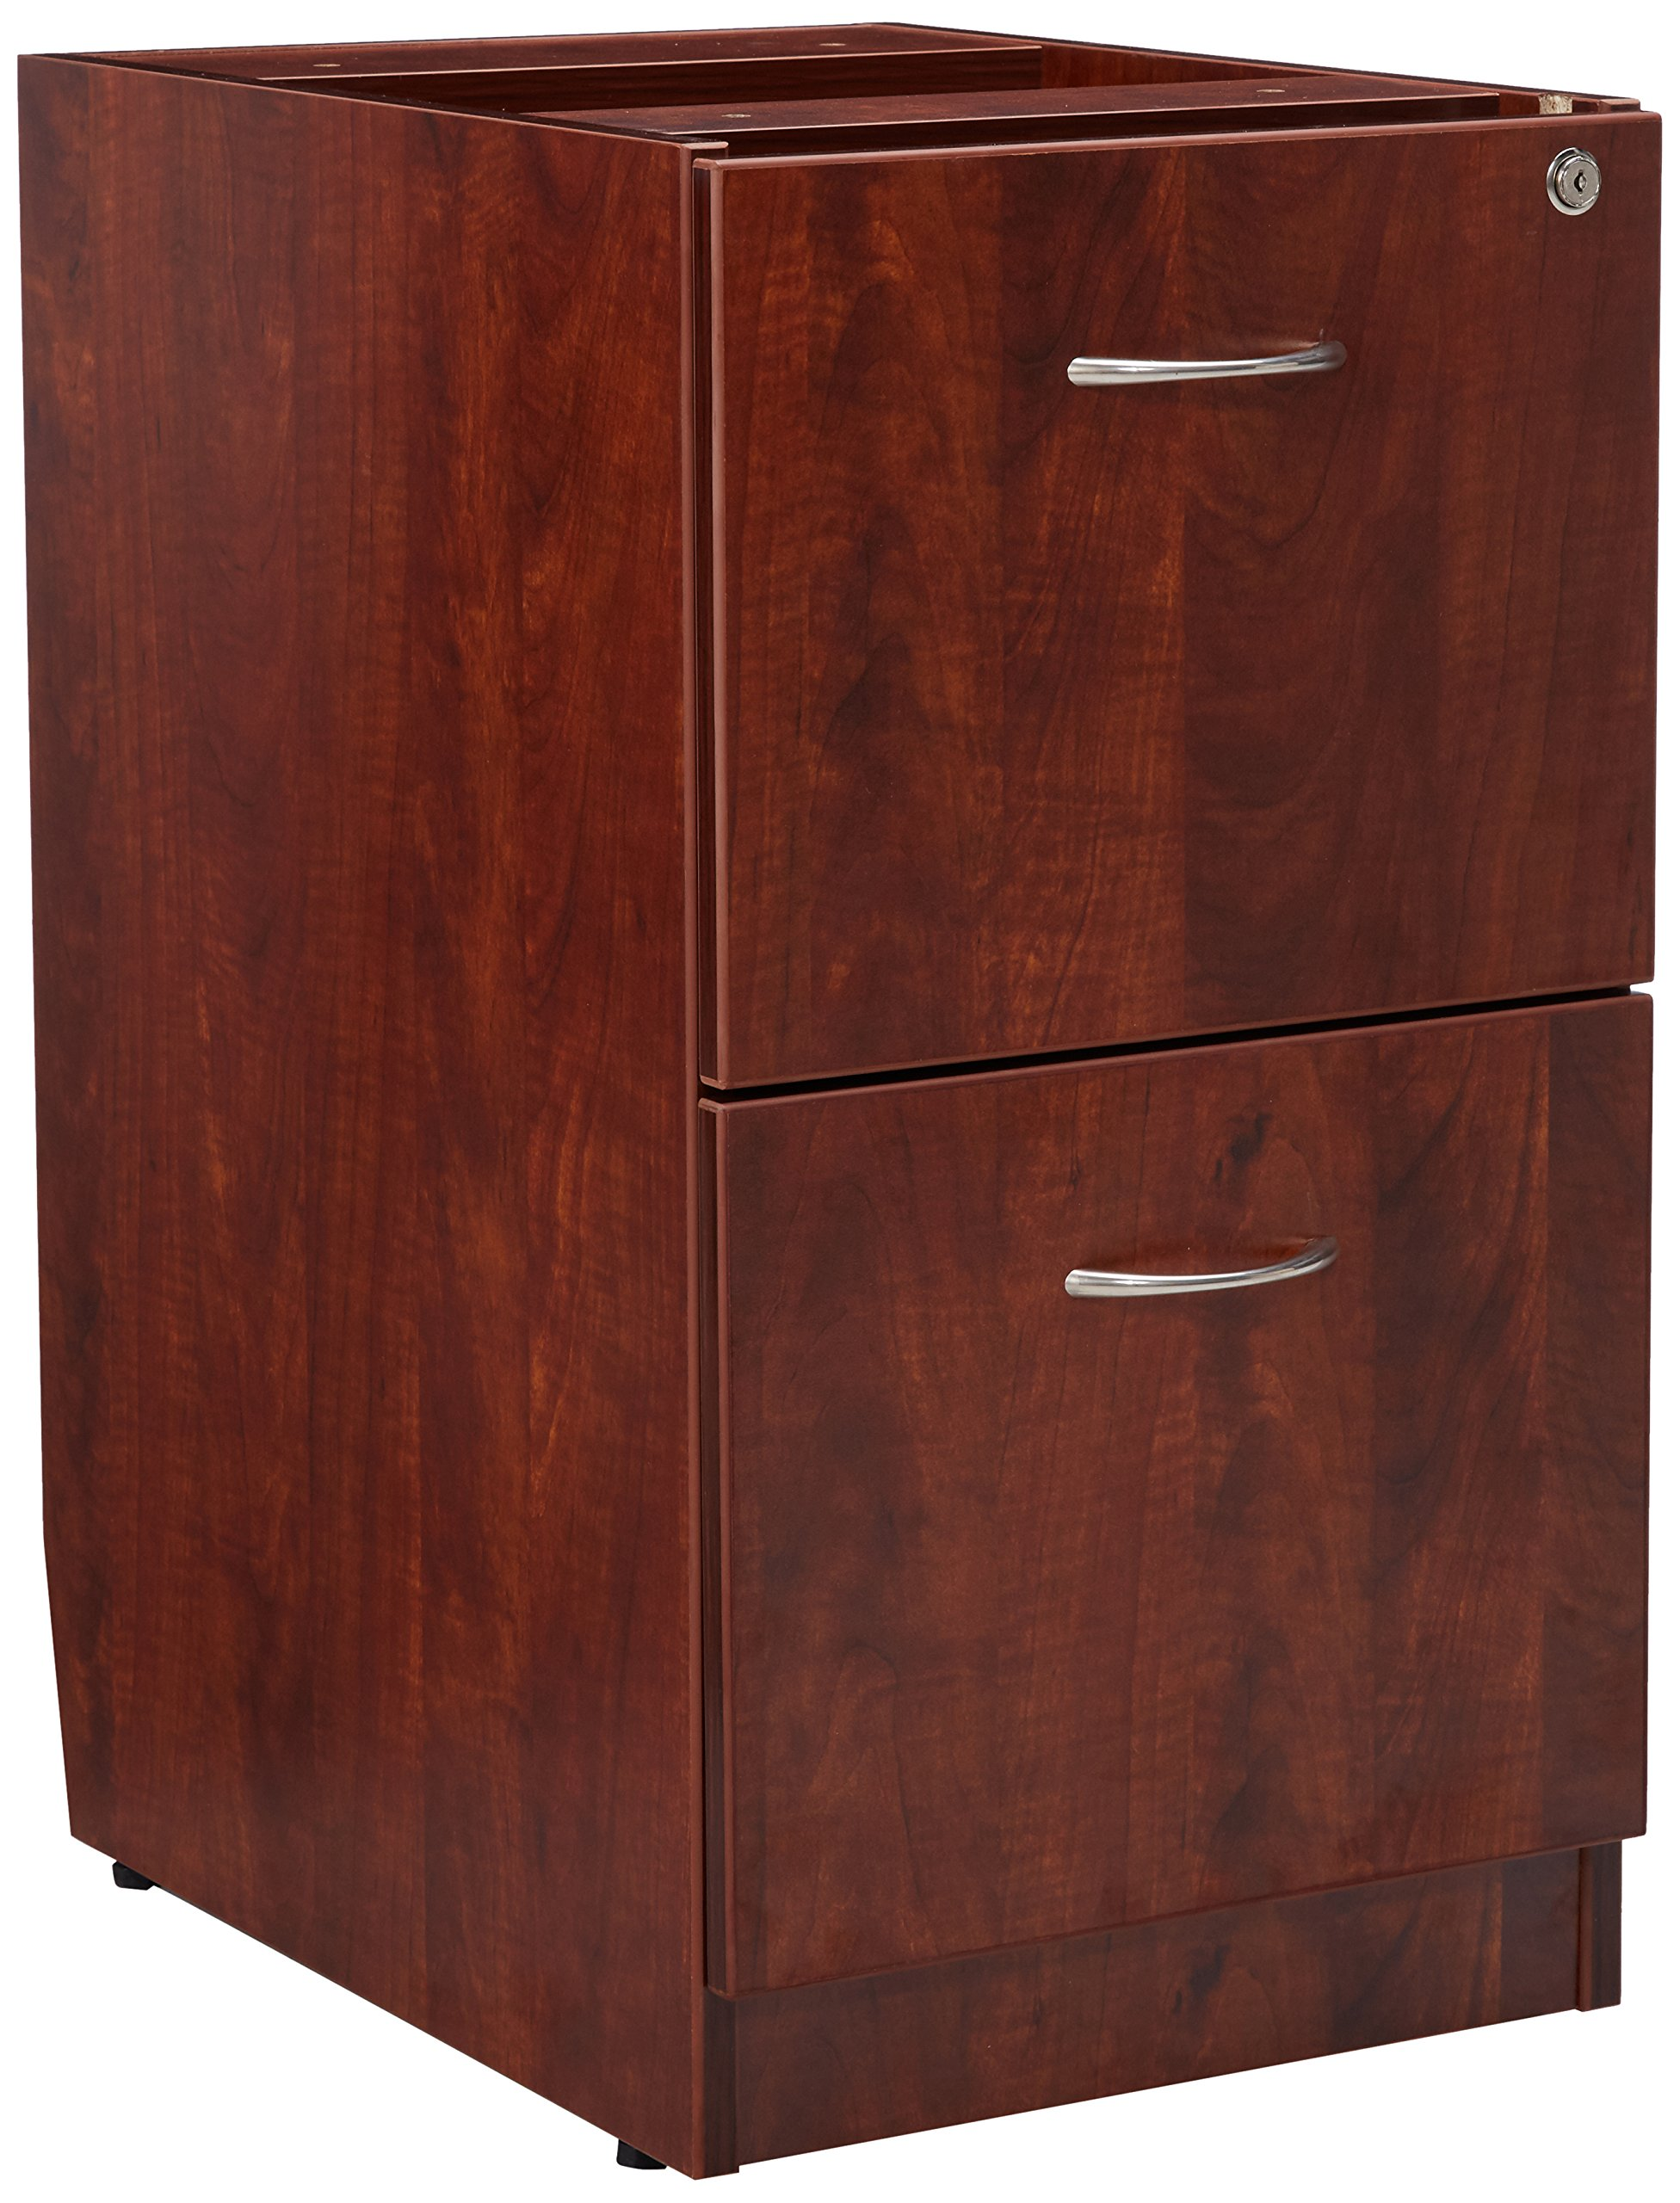 Lorell LLR69606 69000 Series Free Standing Fixed Pedestals, Cherry by Lorell